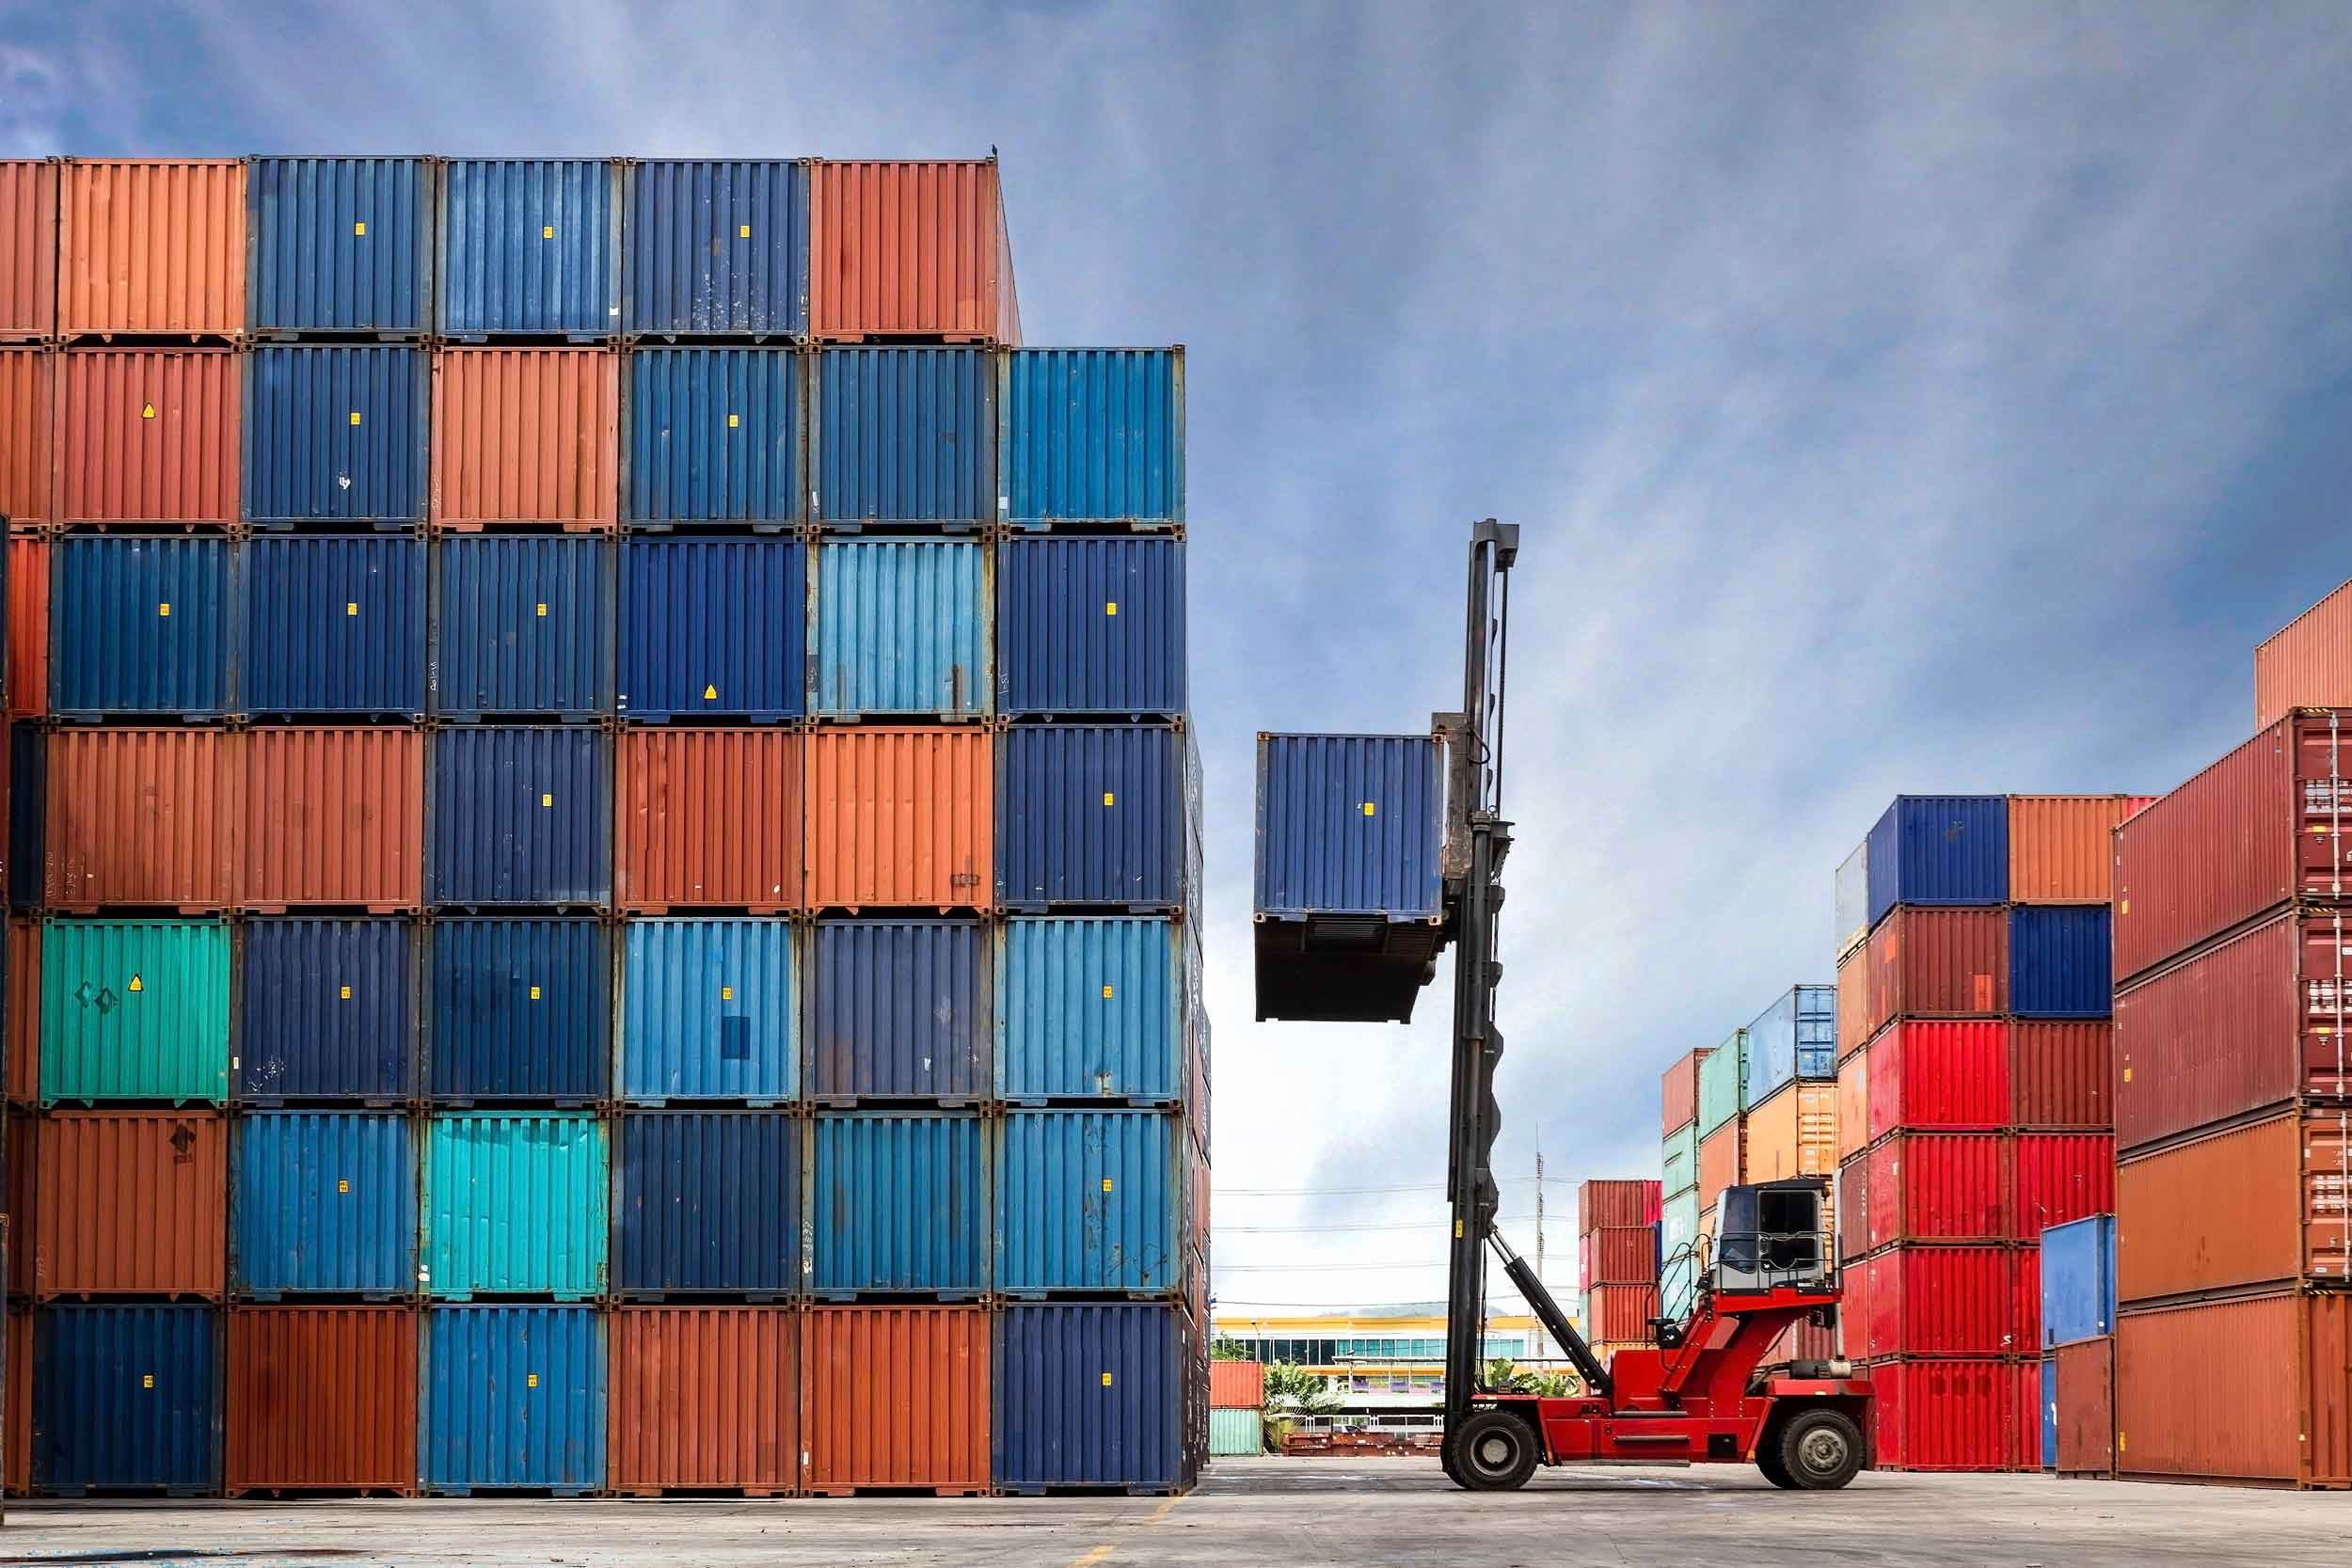 Image of containers at a cargo port